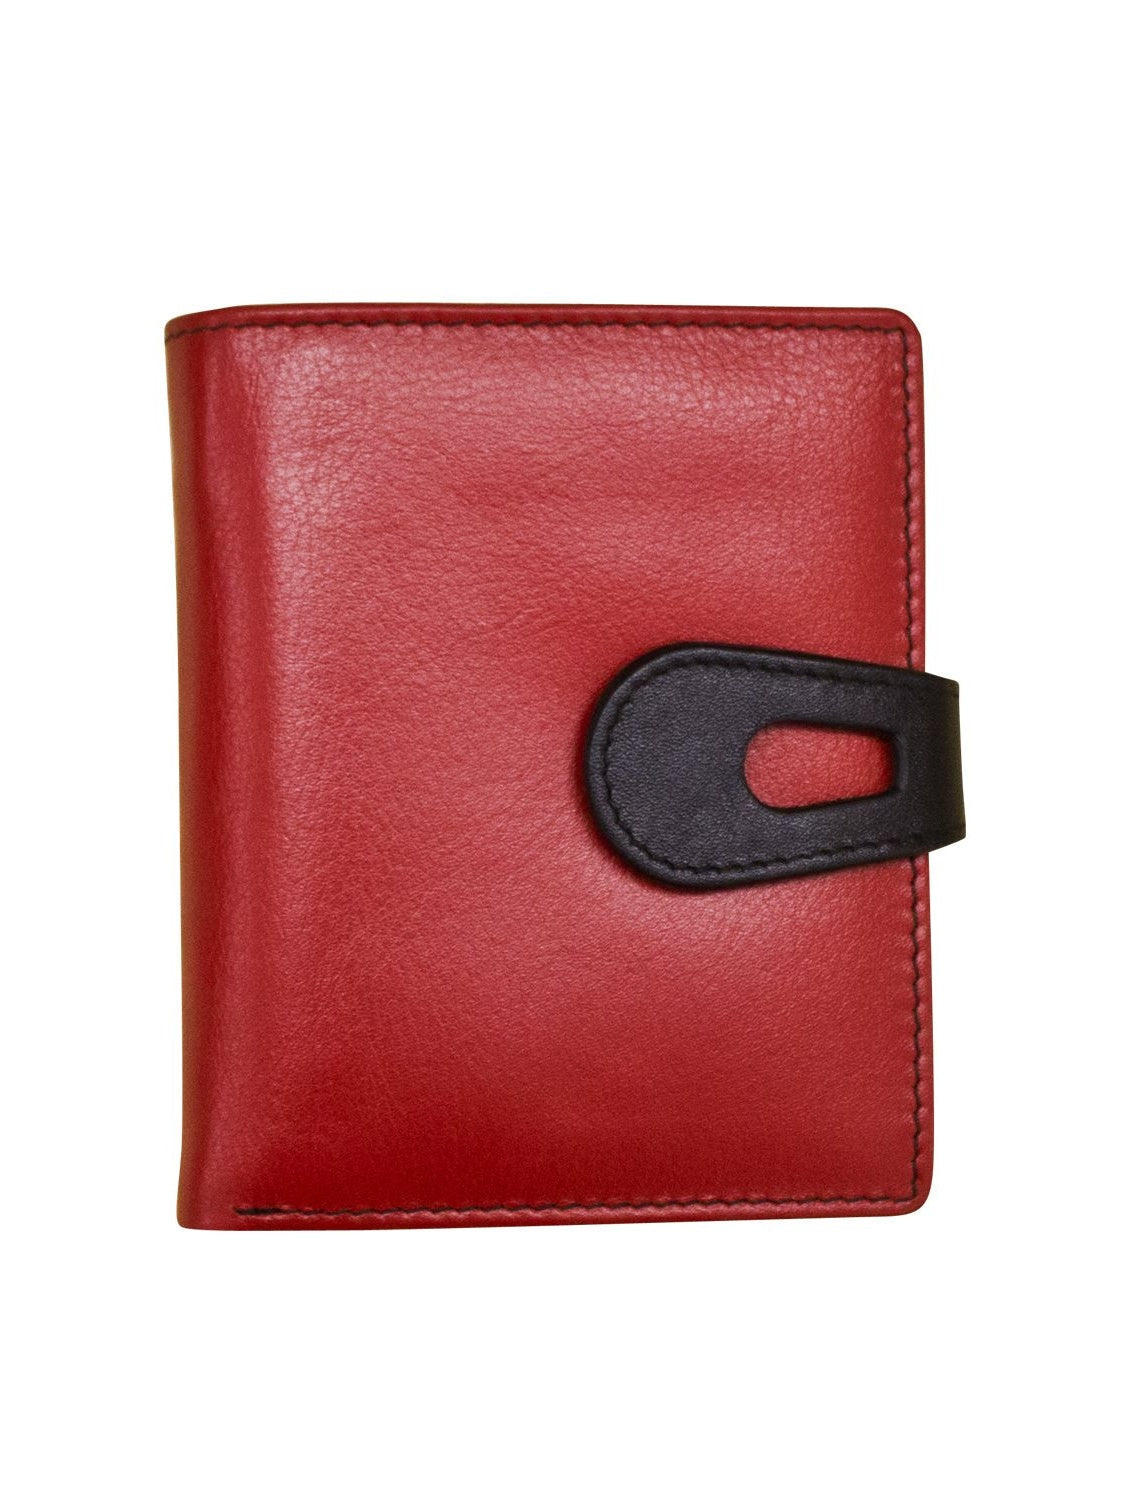 Red and Black Cutout Wallet